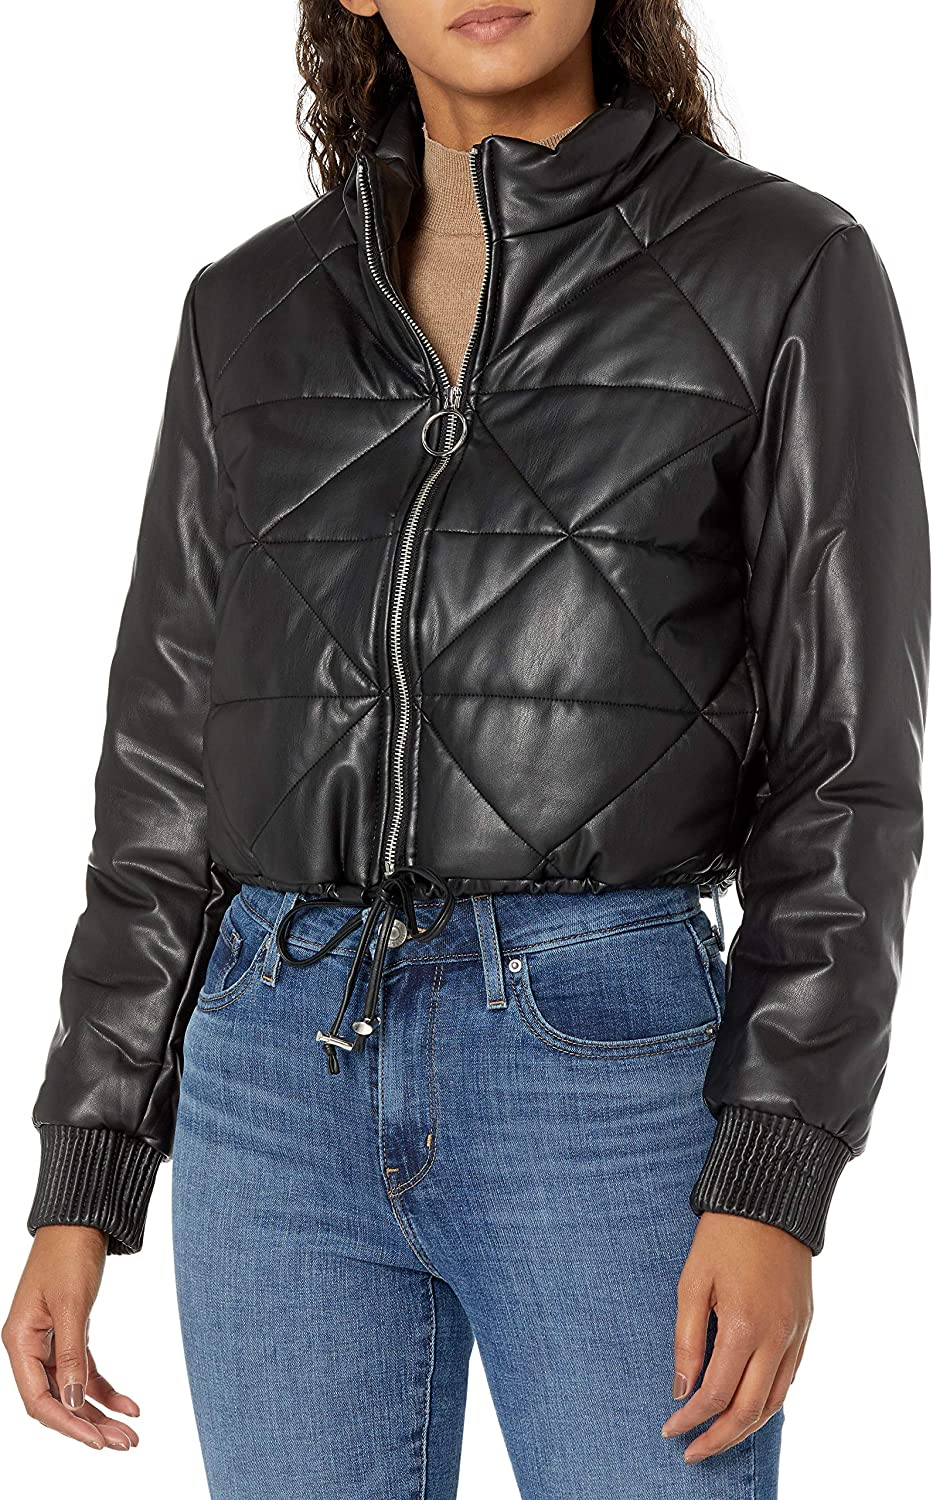 BLANKNYC womens 70% OFF Outlet Bomber cheap